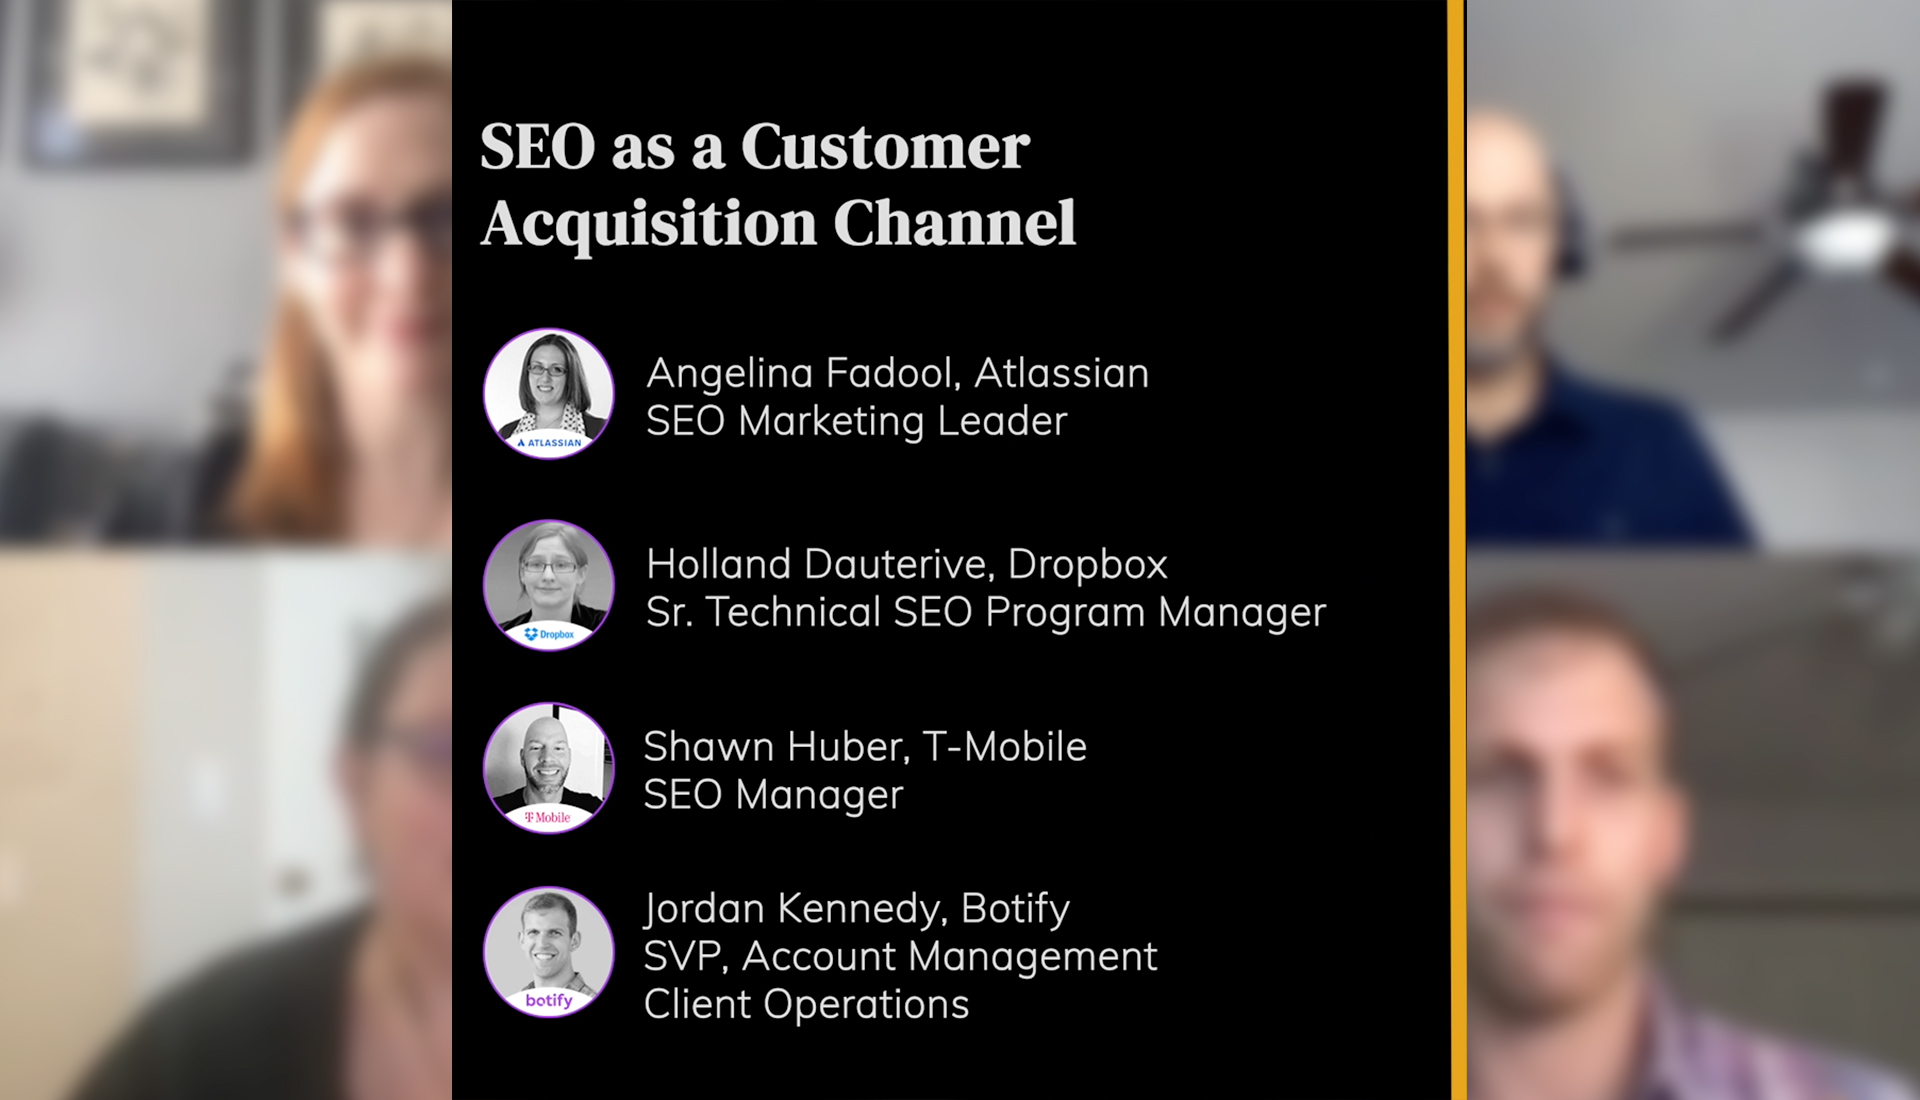 SEO as a Customer Acquisition Channel